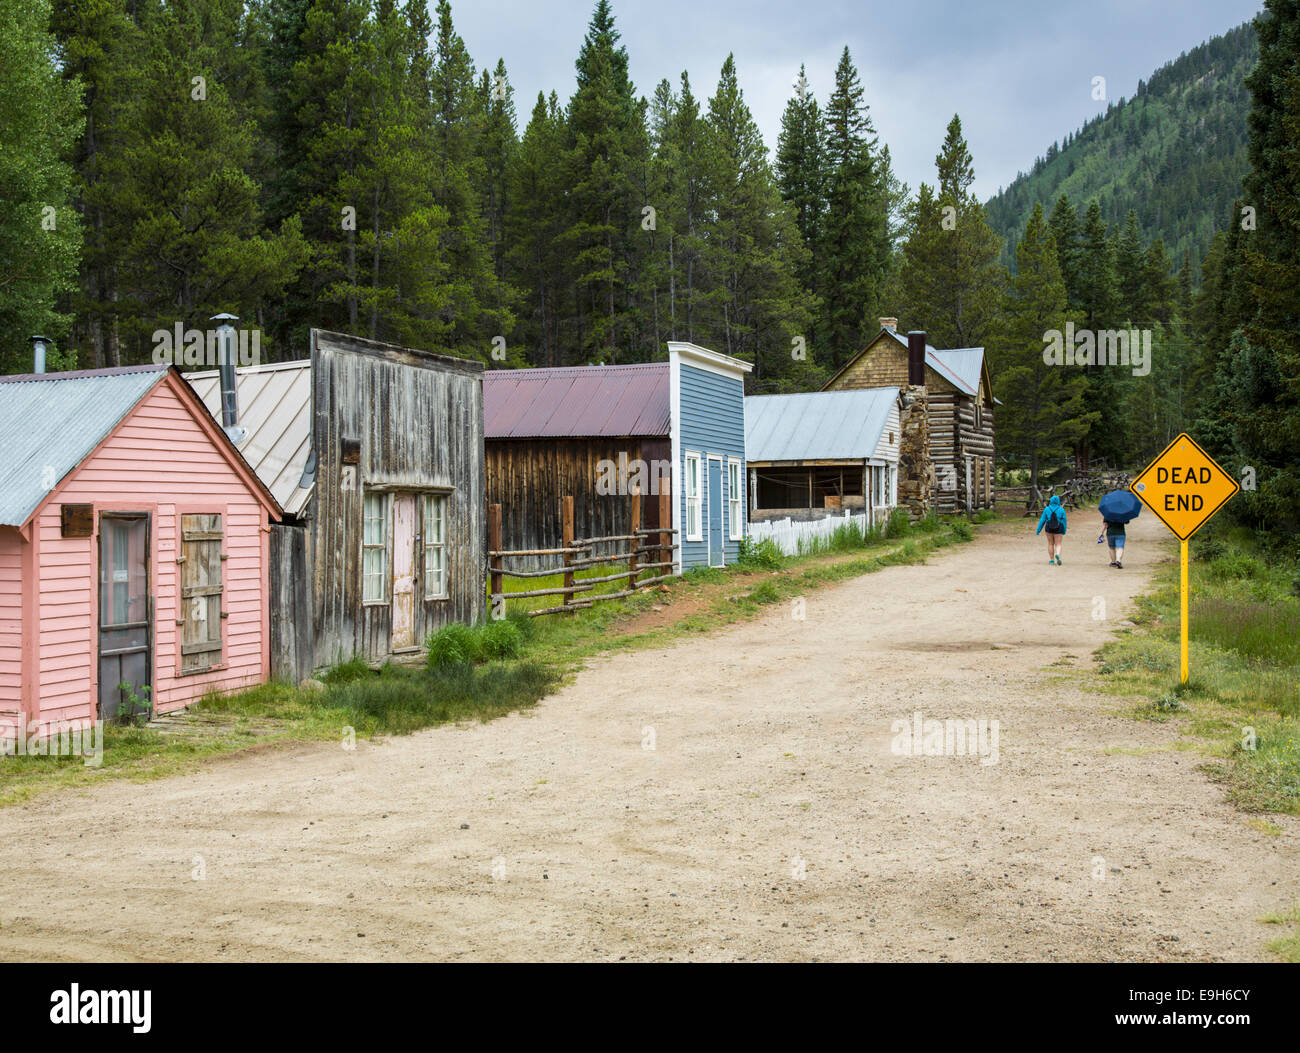 Ghost town of St Elmo in Chaffee County, Colorado, USA - with Dead End sign - Stock Image